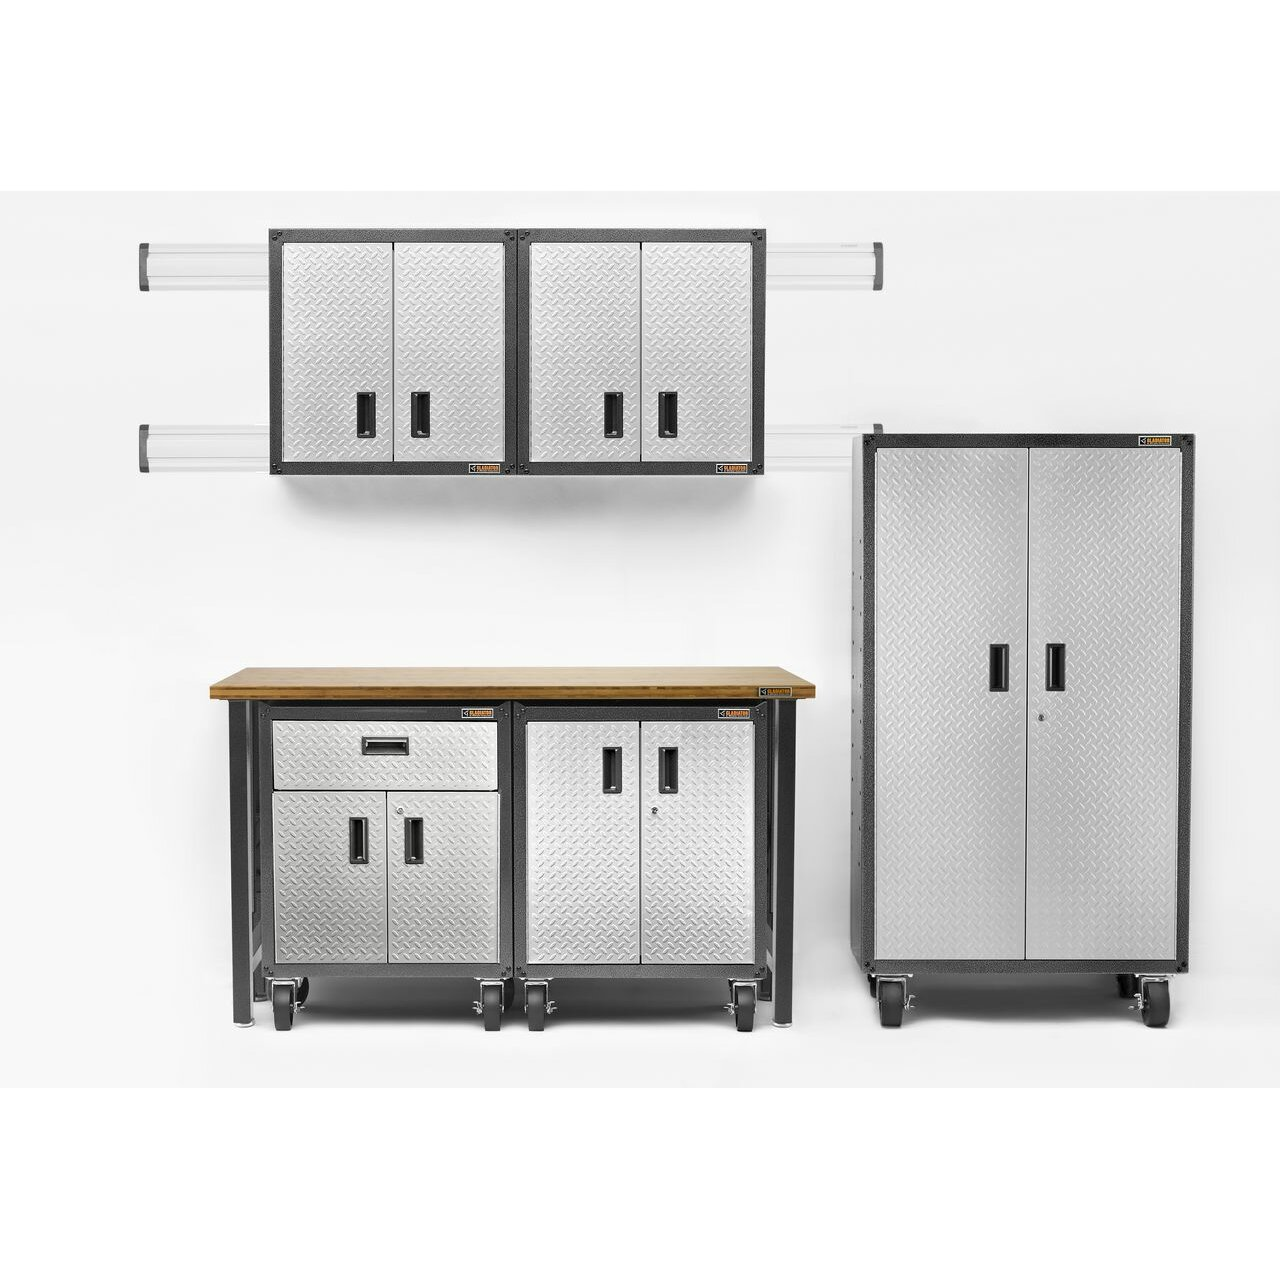 Ready To Assemble Kitchen Cabinets Reviews Gladiator Quot Ready To Assemble 31 Quot Quot H X 28 Quot Quot W X 18 Quot Quot D